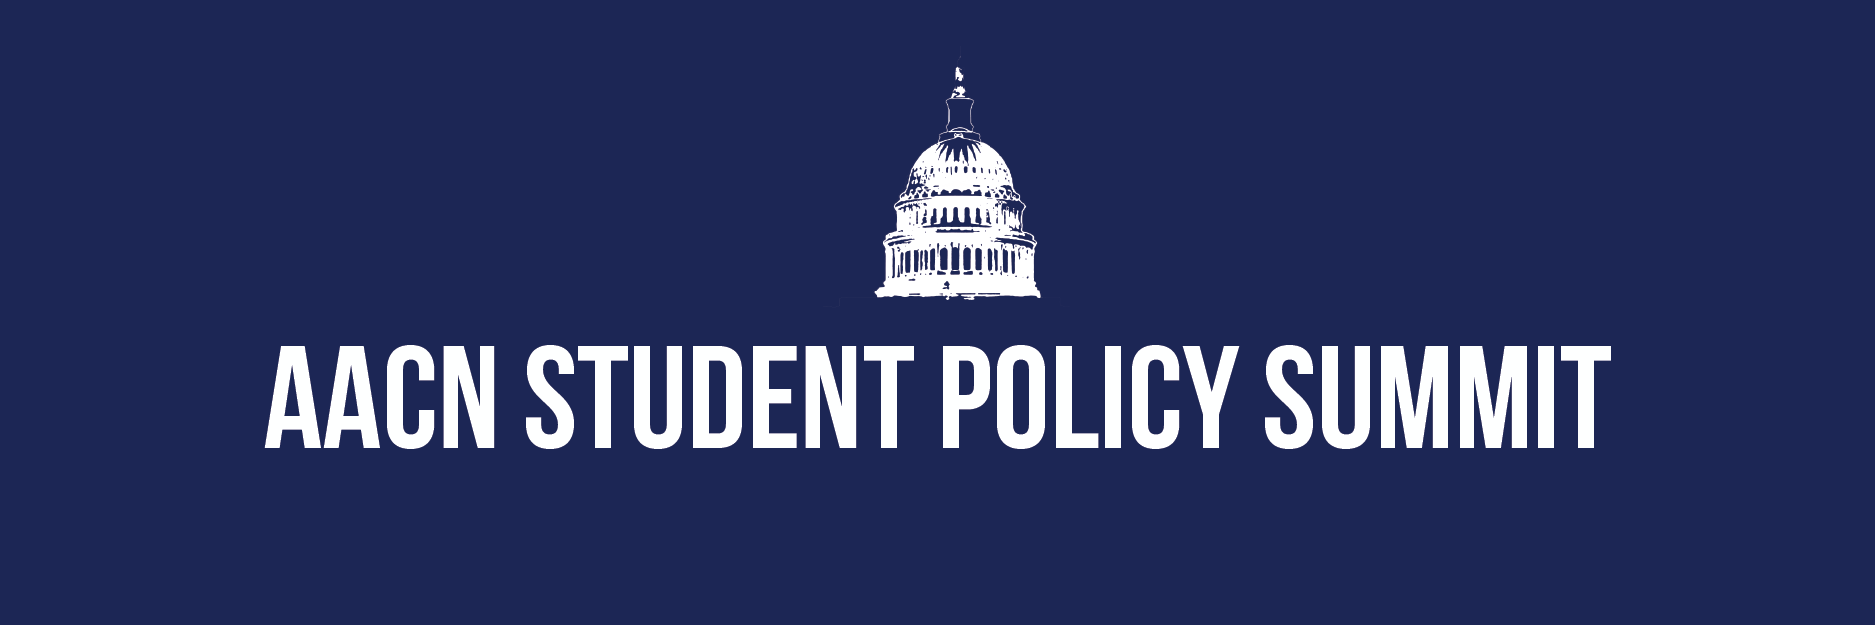 Student Policy Summit Header Image